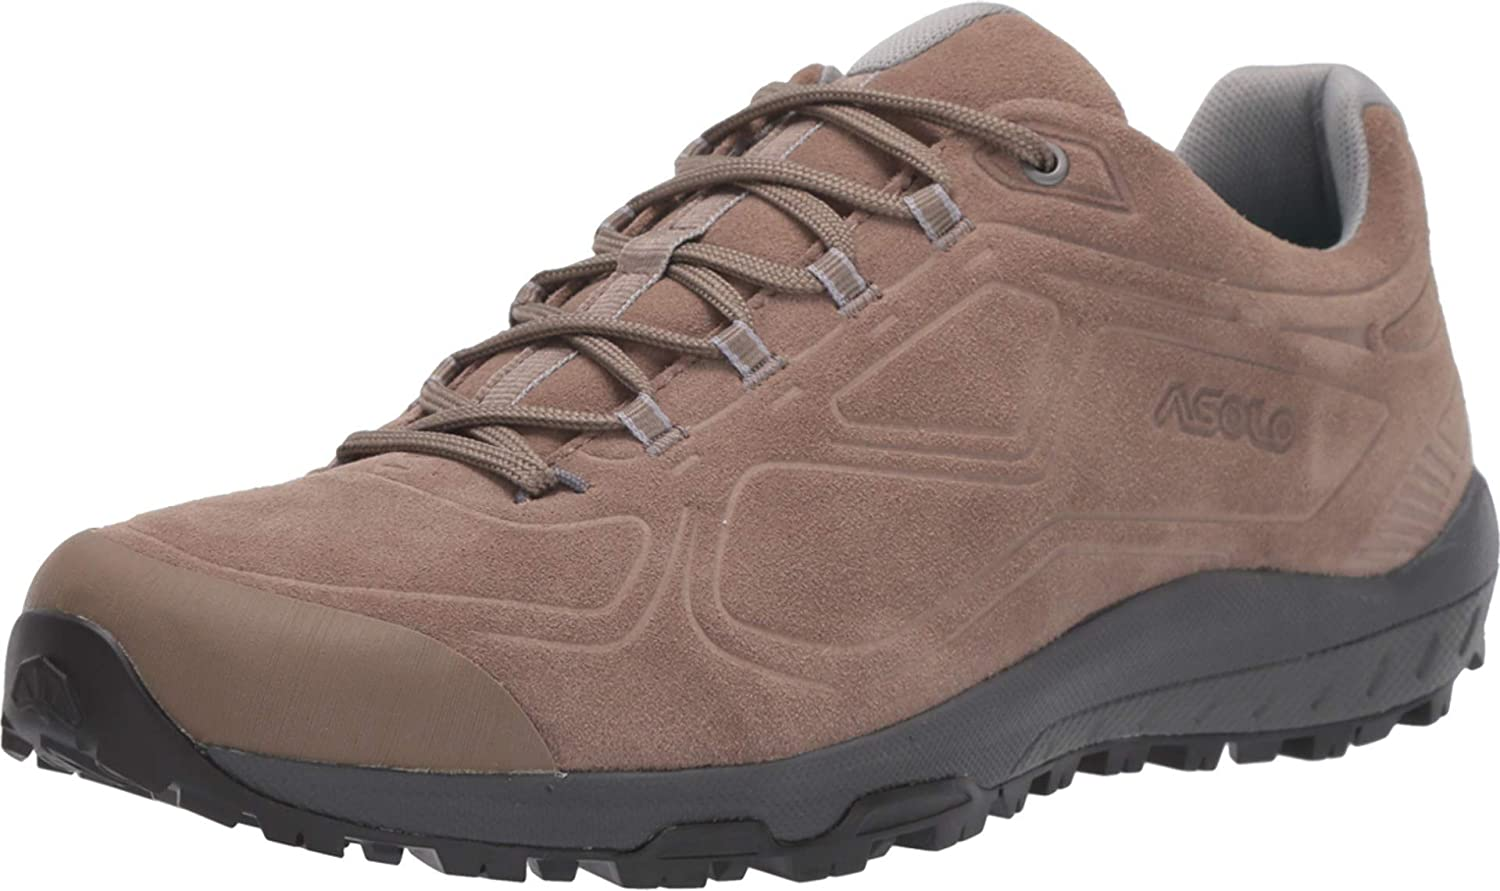 Asolo Women's Flyer Hiking latest Leather Ranking TOP11 Shoe